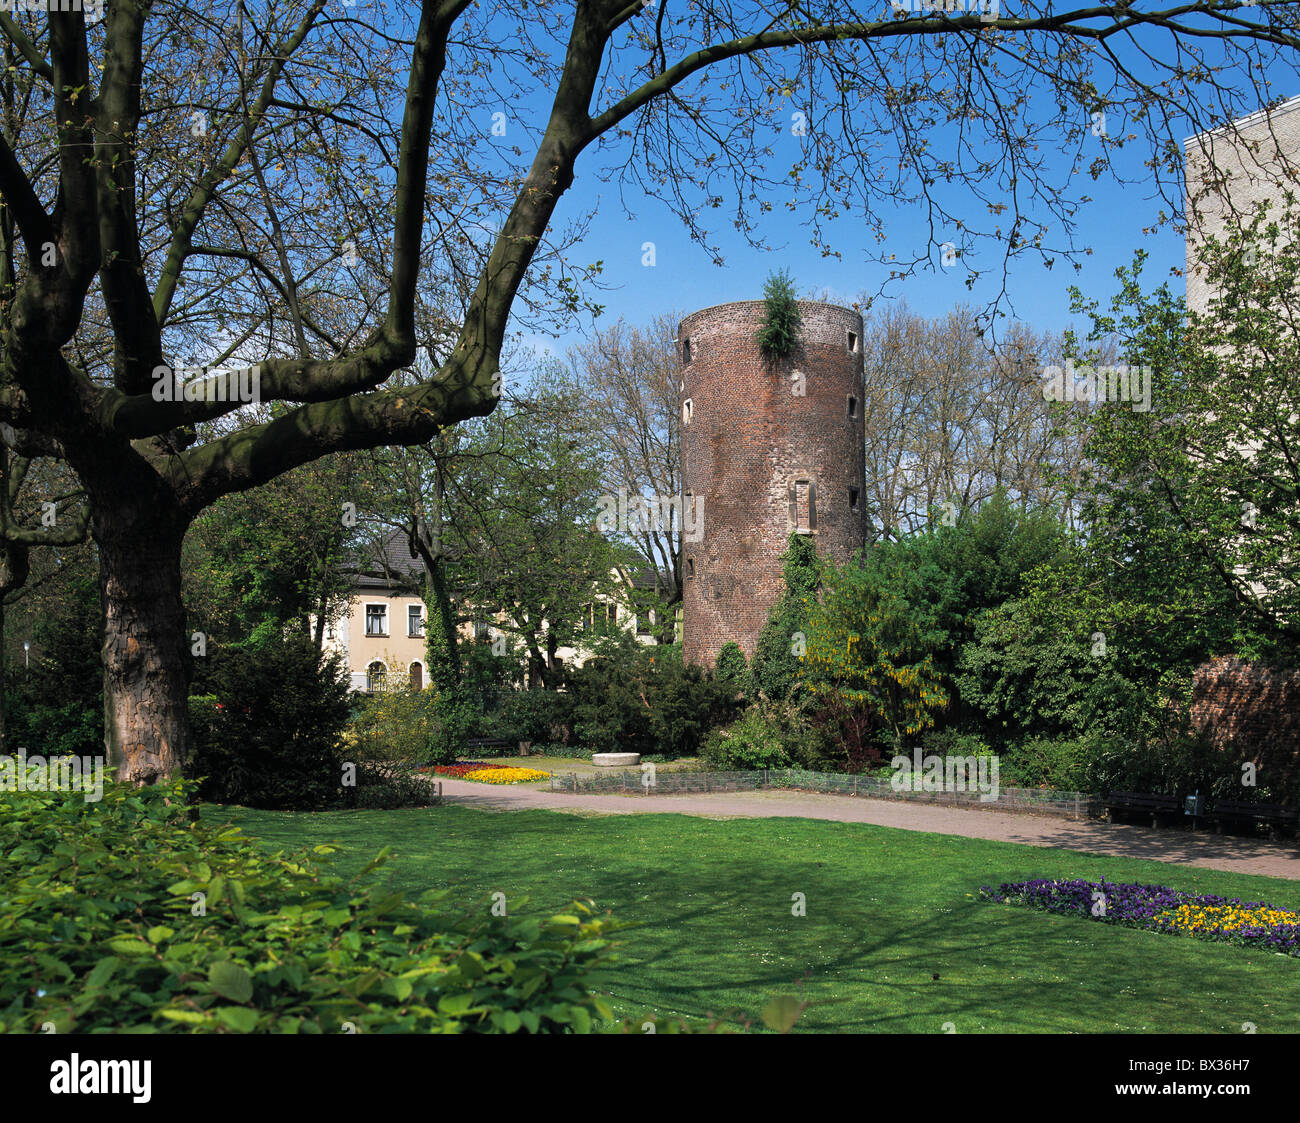 town tower park spring Krefeld-Uerdingen Lower Rhine North Rhine-Westphalia Germany Europe Europe Stock Photo